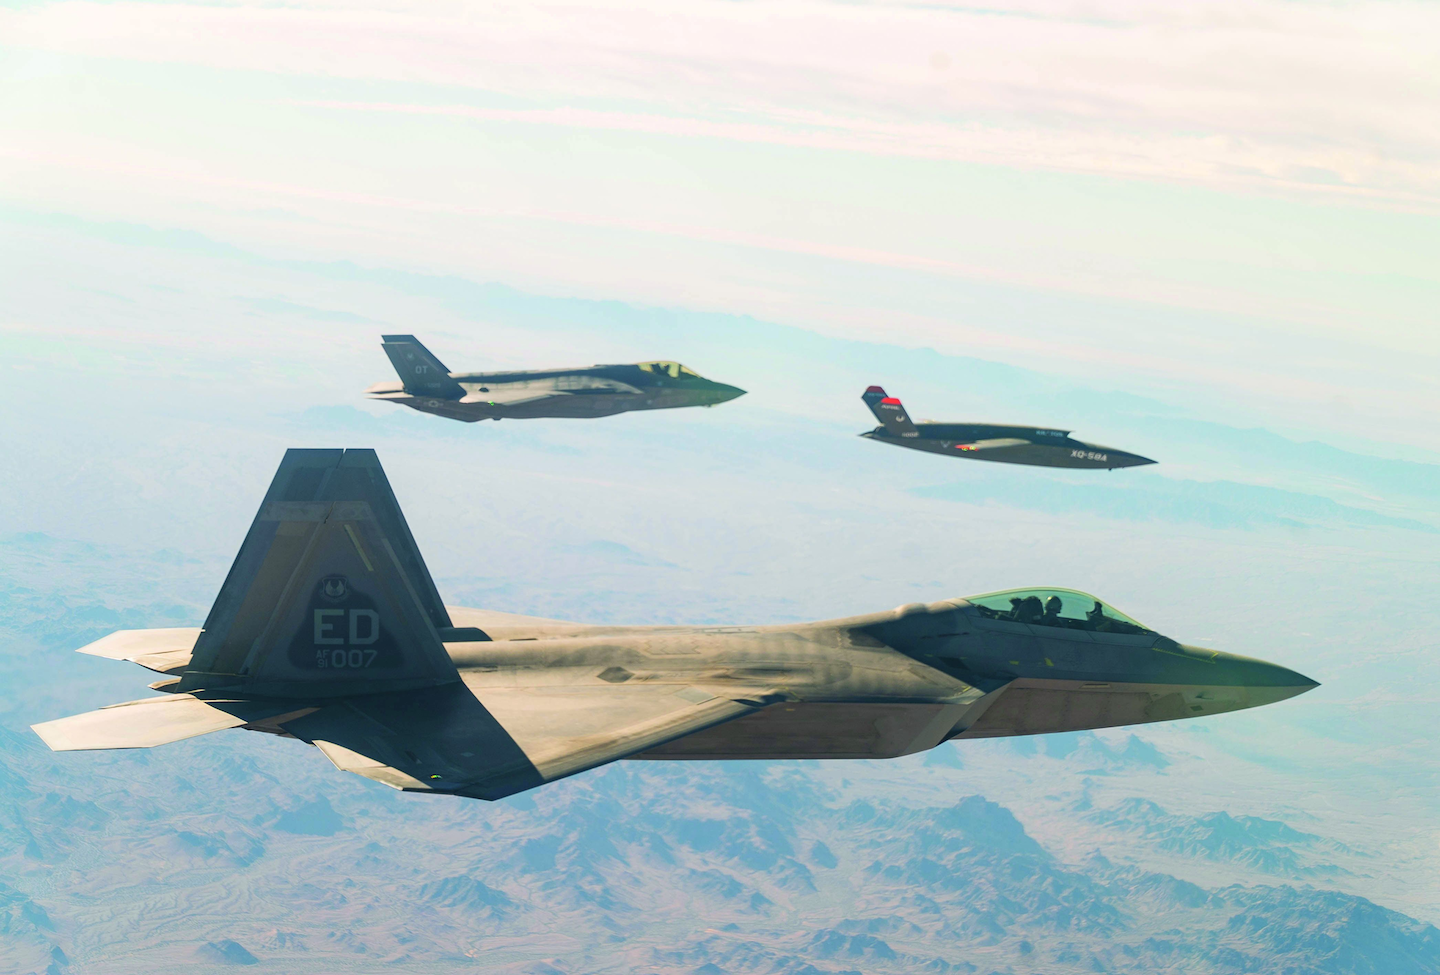 A U.S. Air Force F-22 Raptor and F-35A Lightning II manned combat aircraft fly in formation with the XQ-58A Valkyrie low-cost unmanned aerial vehicle over the U.S. Army Yuma Proving Ground testing range, Ariz.